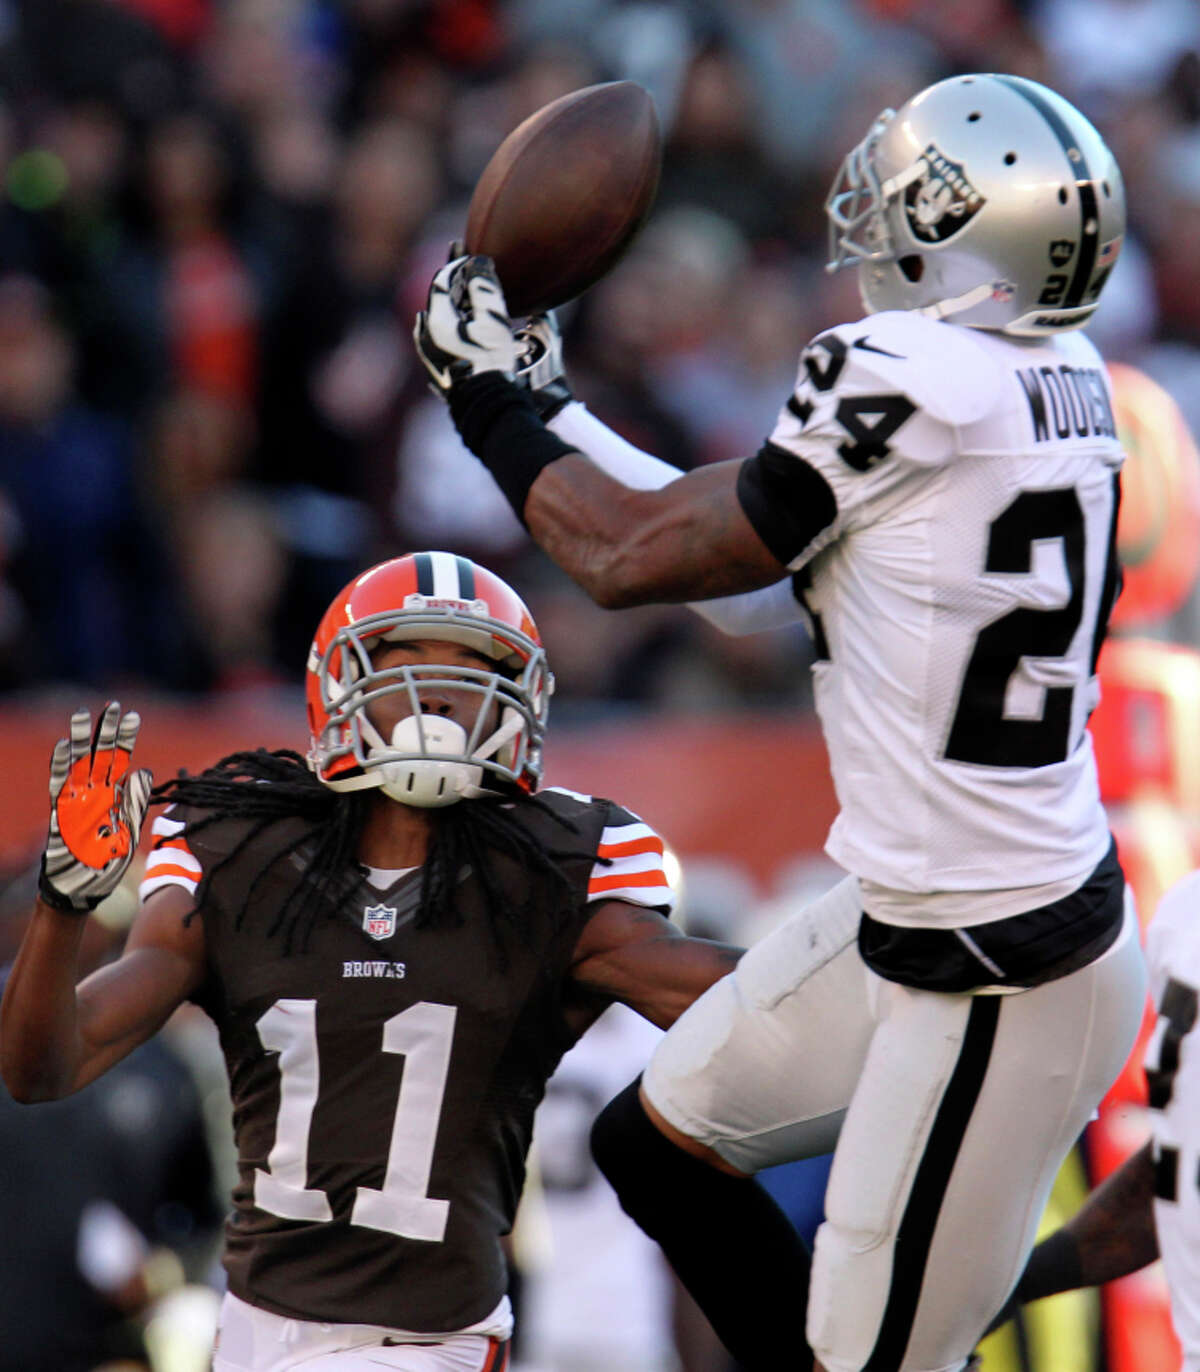 Charles Woodson nearly intercepts a pass in Cleveland. Woodson has two picks this season.